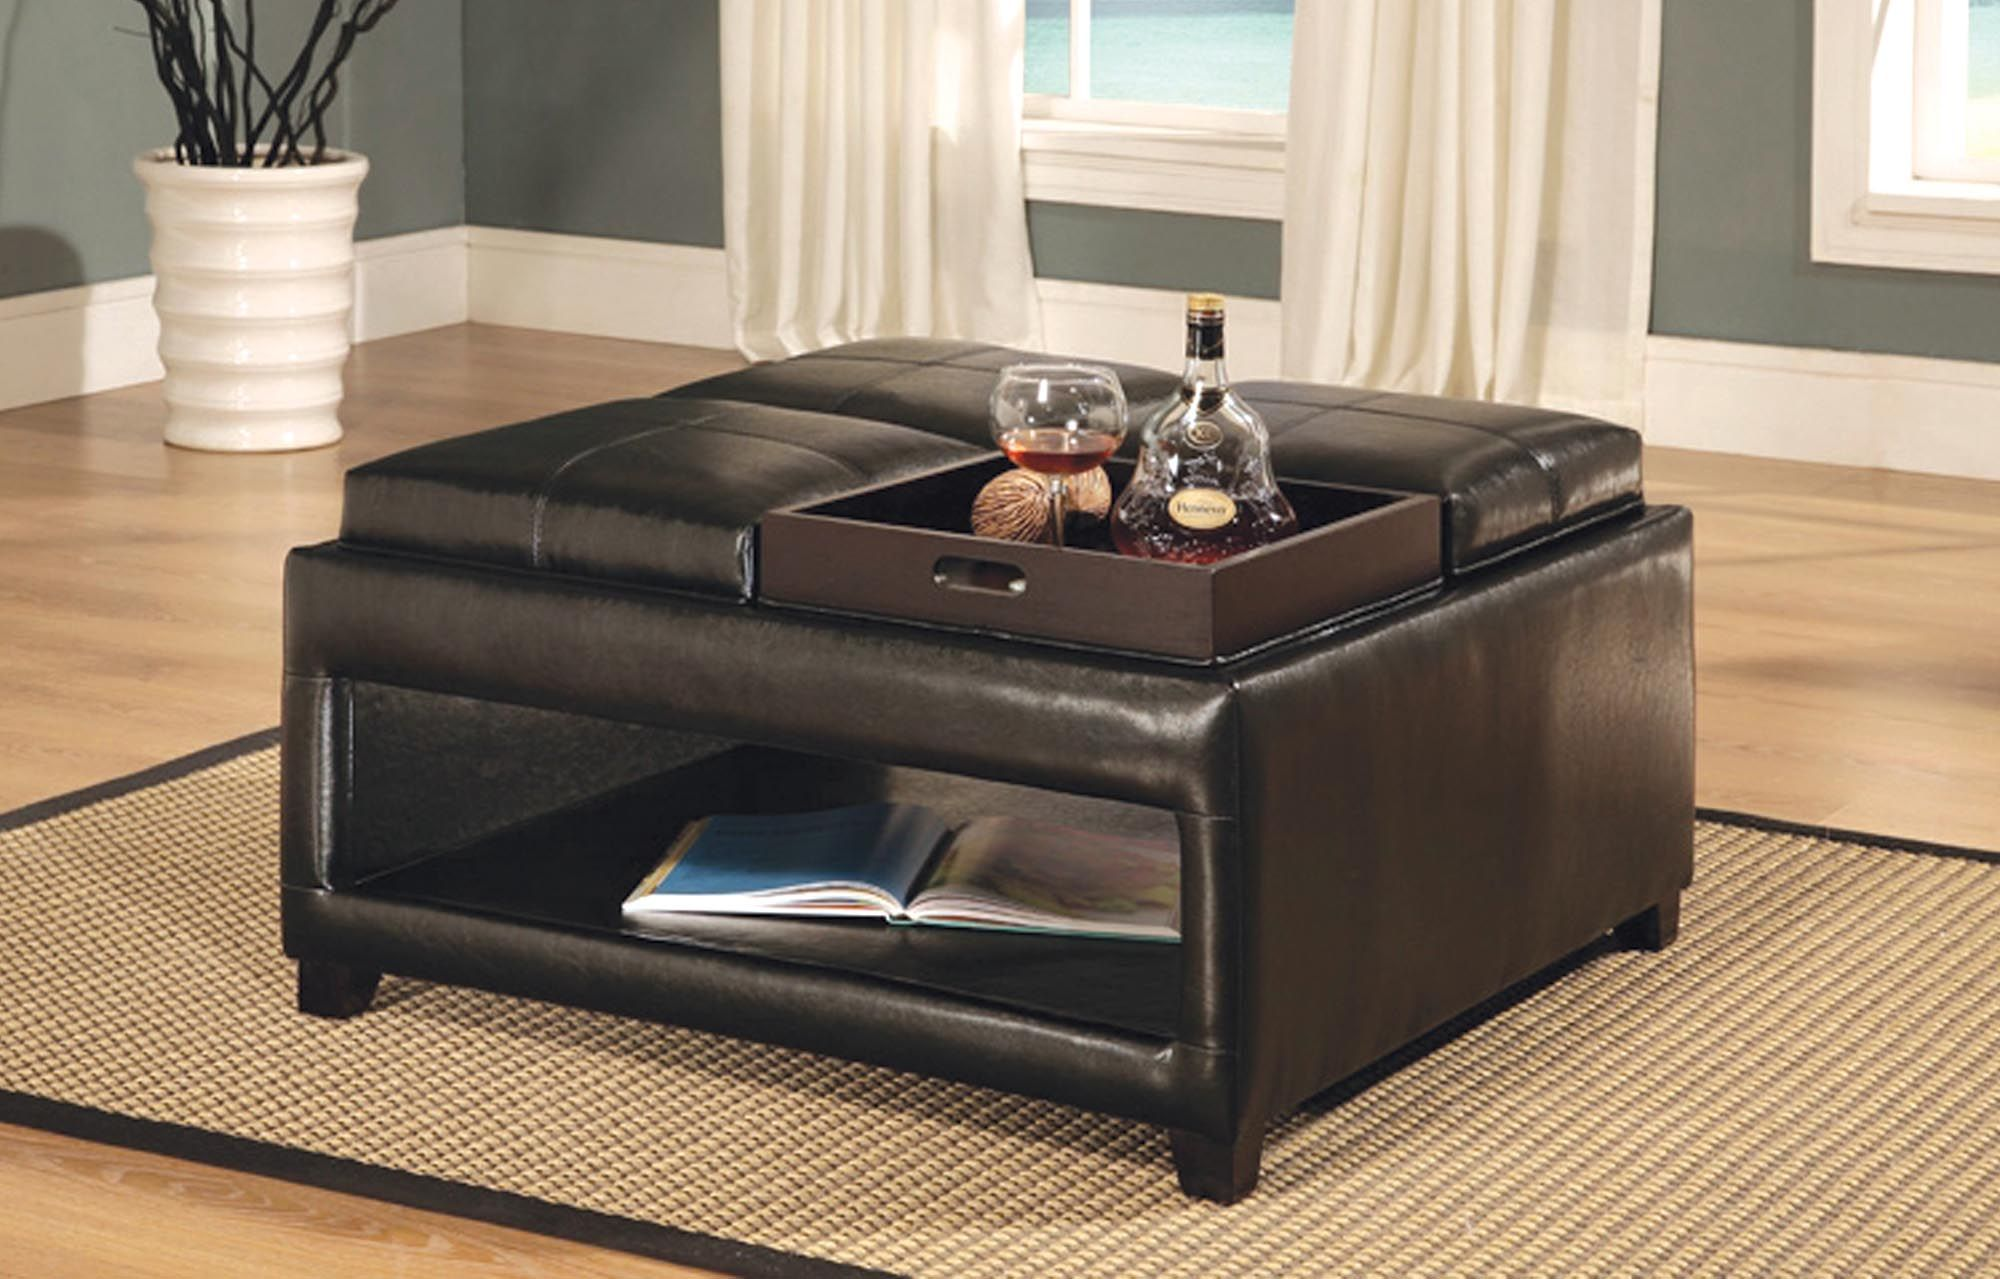 Cocktail Storage Ottoman Espresso Four Tray All Top Cushions Convert To Trays Leather Ottoman Coffee Table Leather Coffee Table Square Ottoman Coffee Table